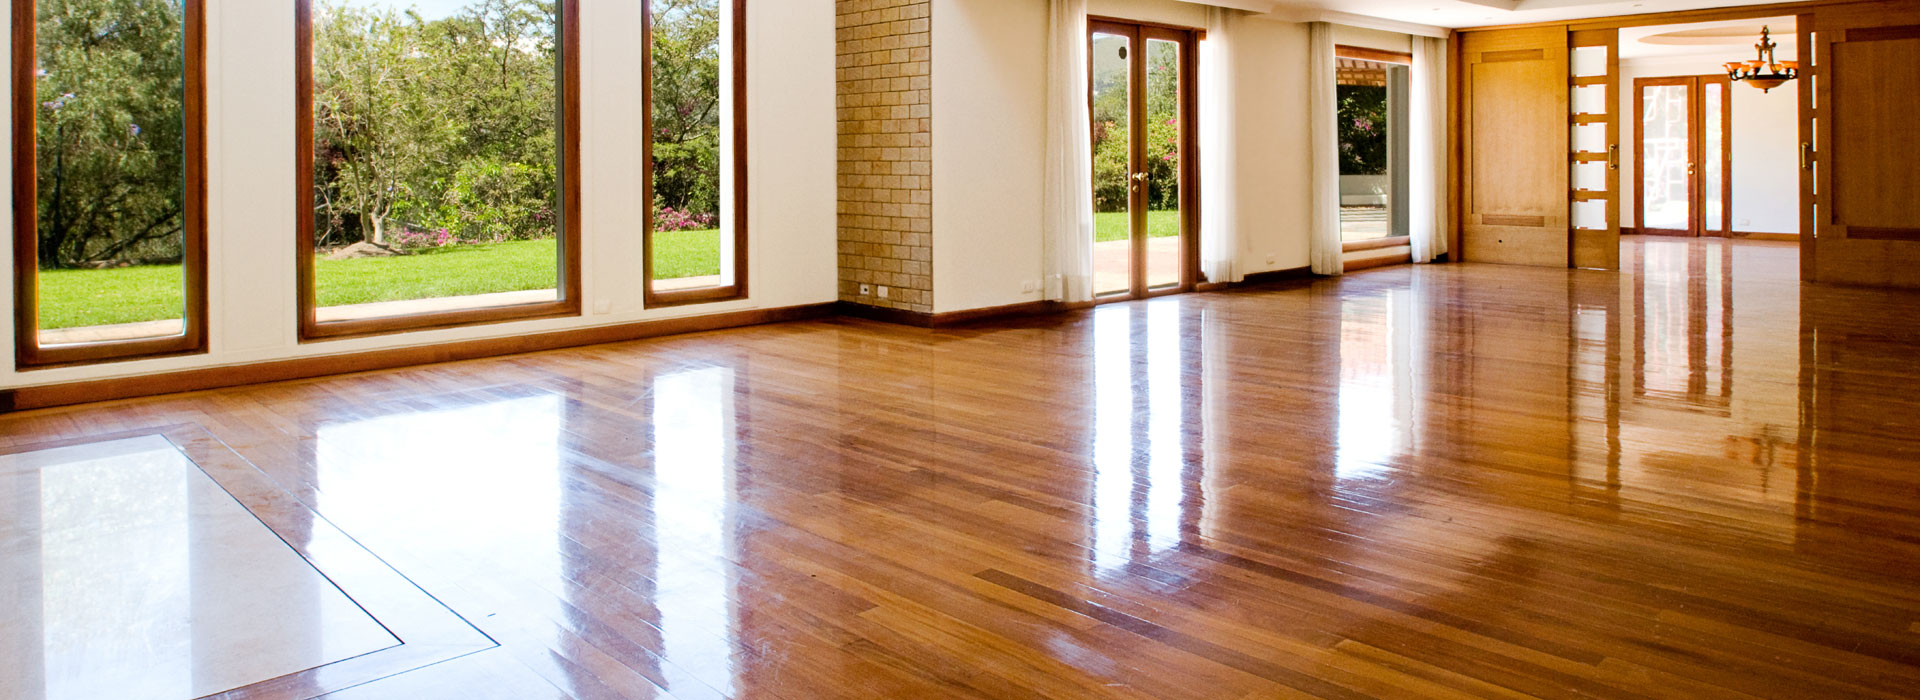 Flooring Slider Image